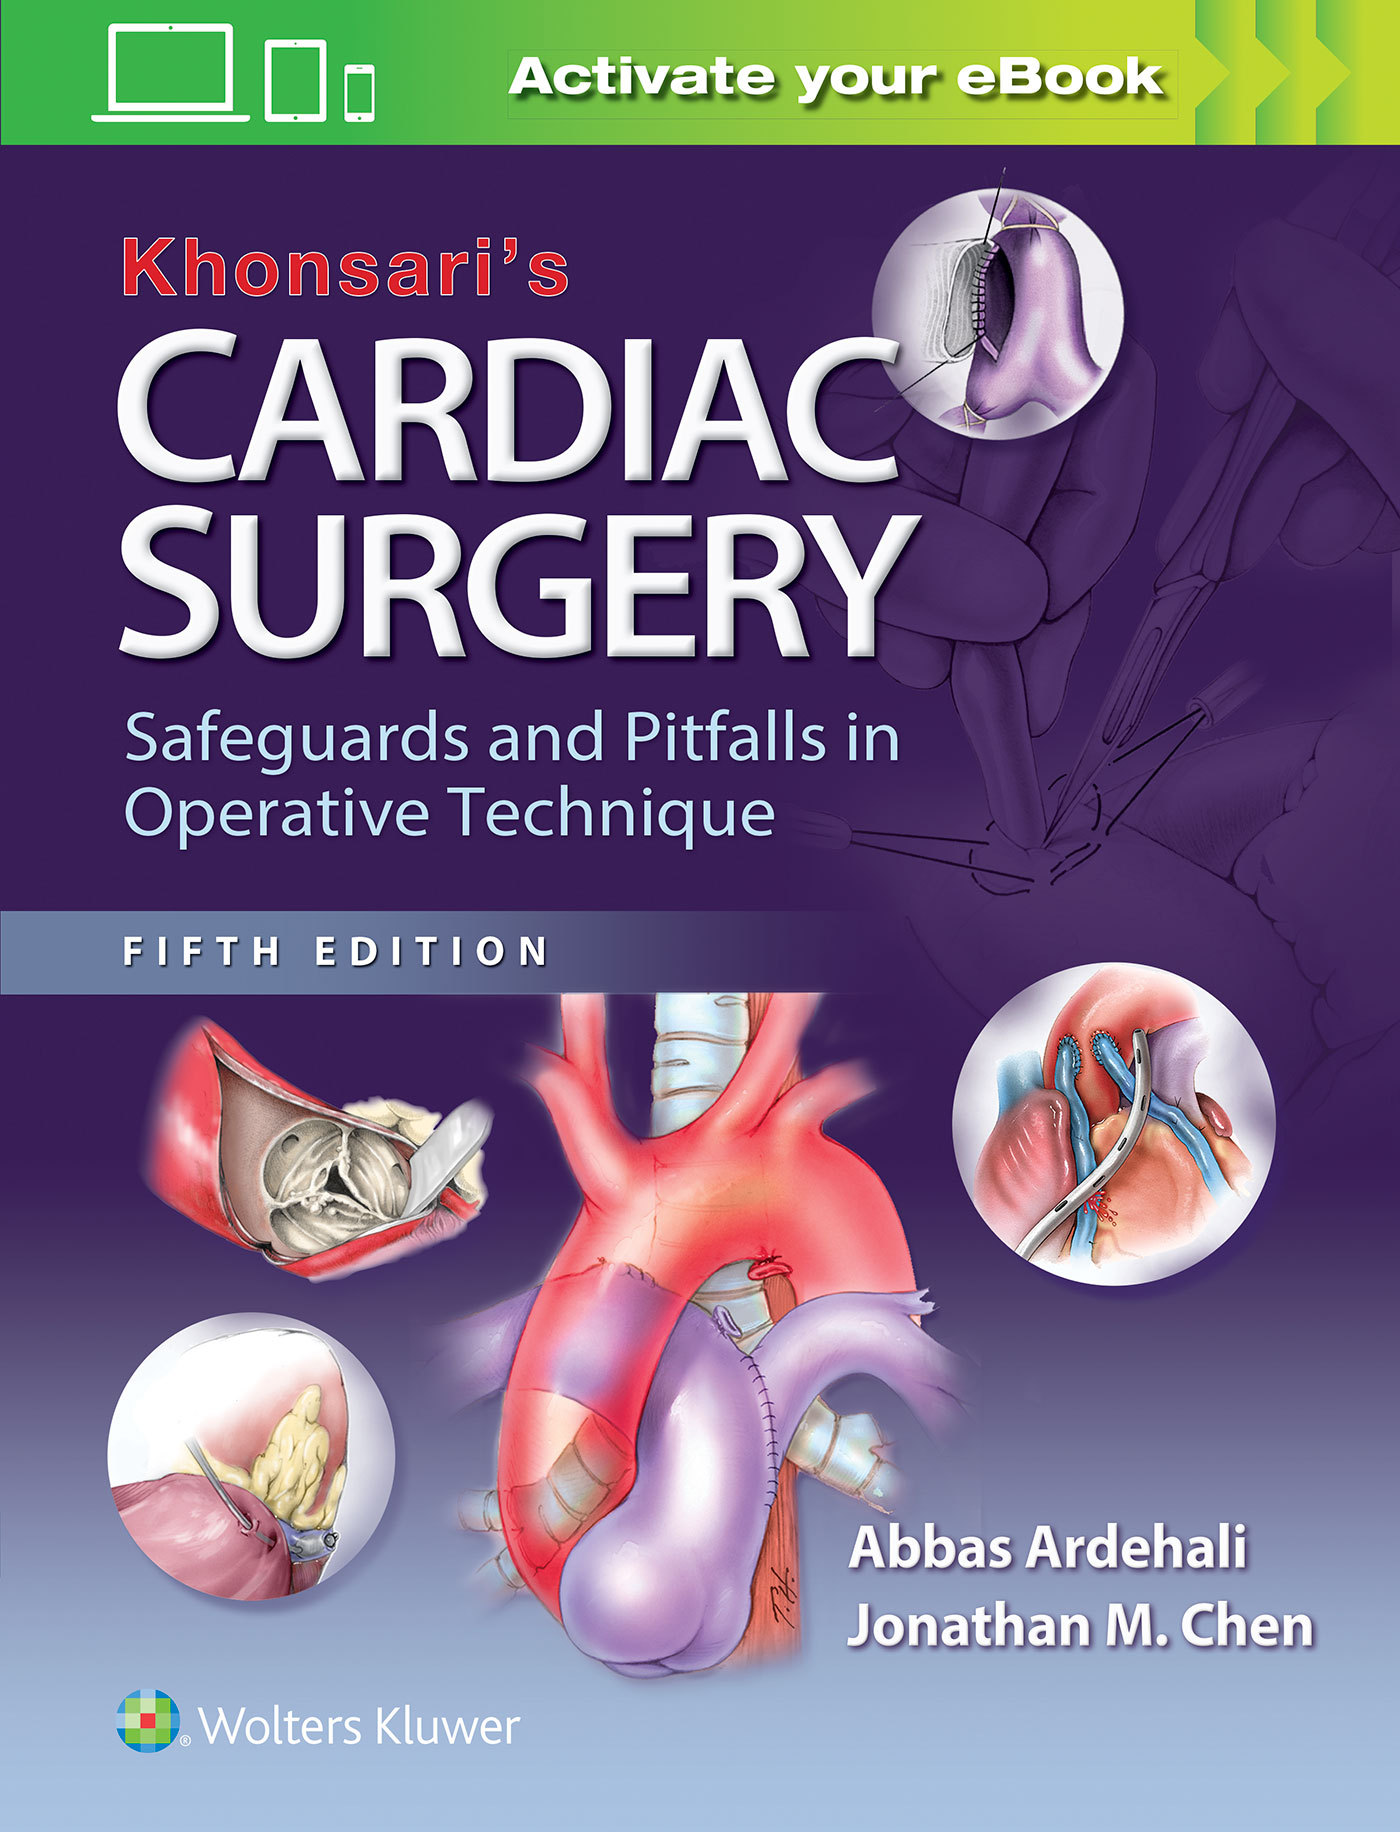 Khonsari's Cardiac Surgery- Safeguards and Pitfalls in Operative Technique